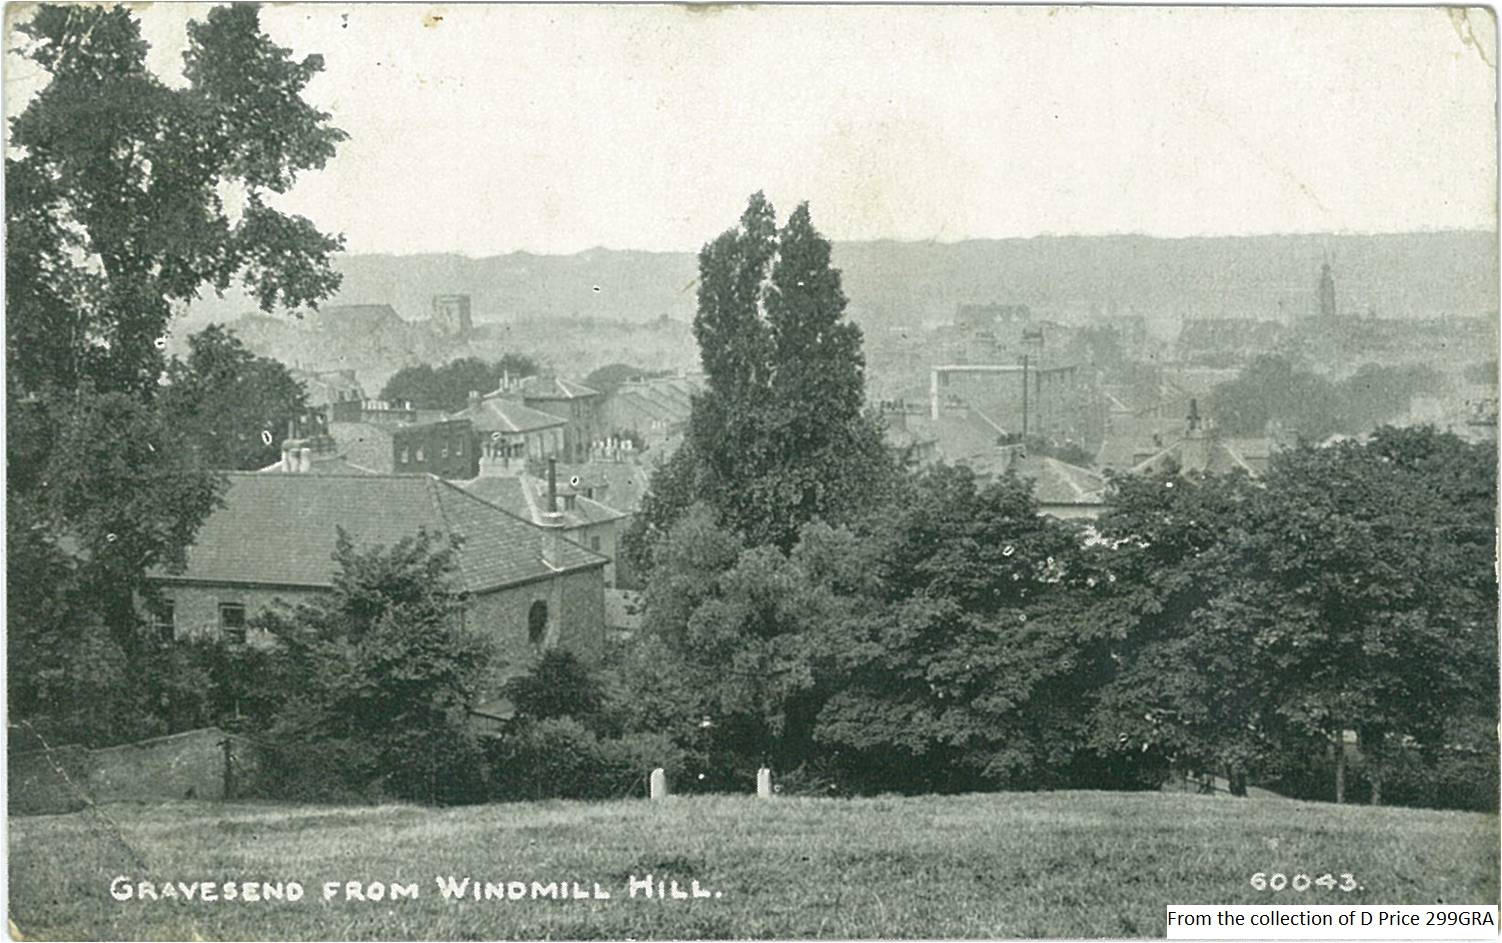 299gra-gravesend-from-windmill-hill-front